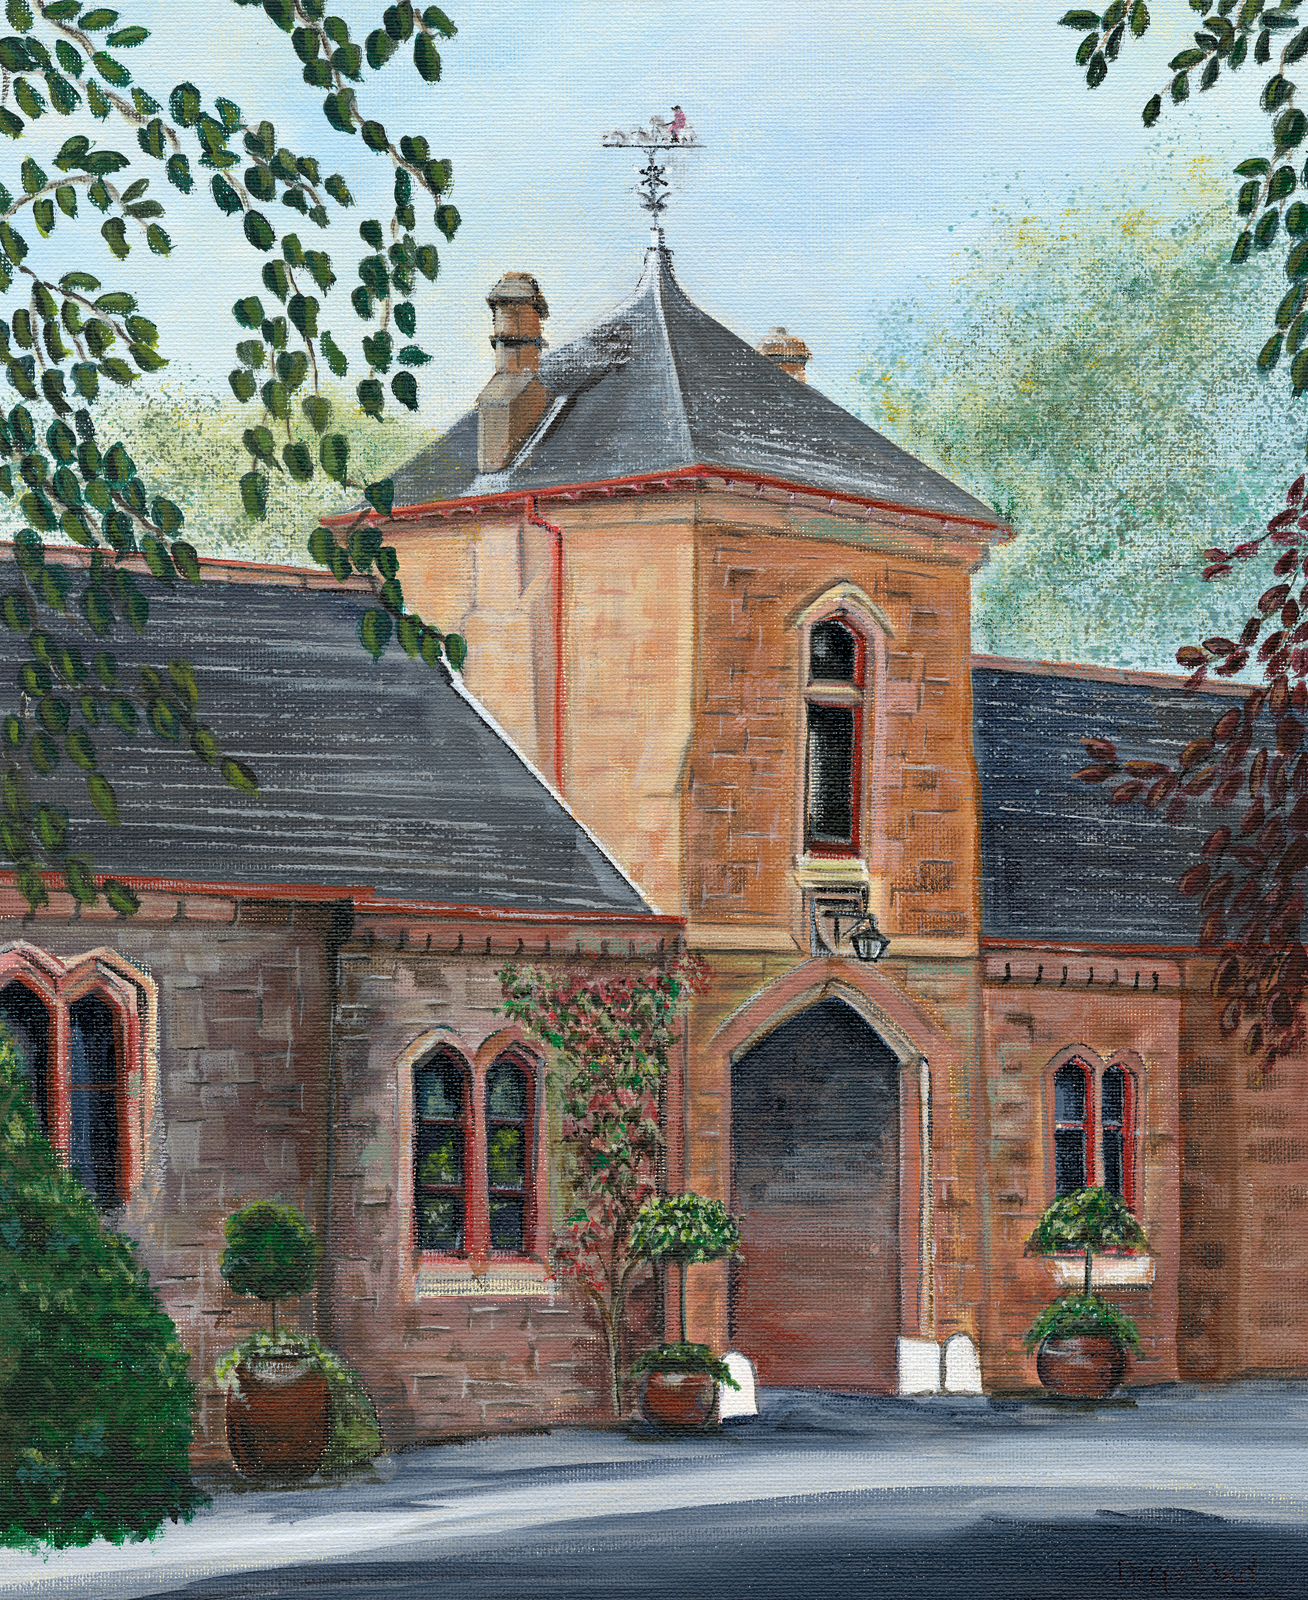 The Stable Block, Dumfries